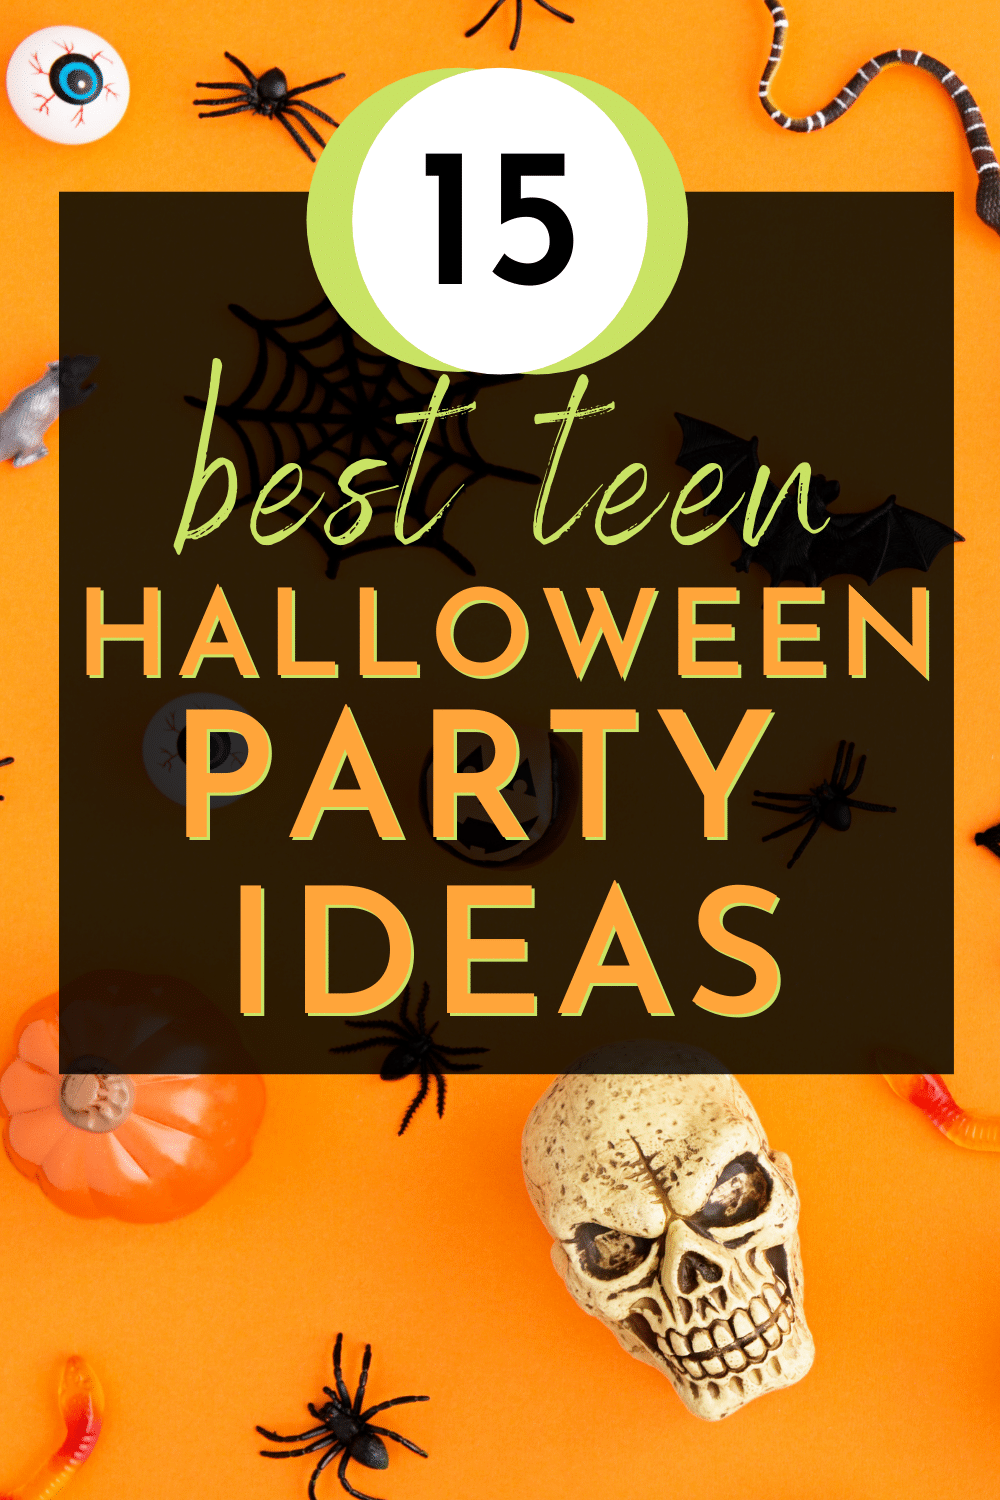 best teen halloween party ideas text over an orange Halloween background with different scary Halloween decorations